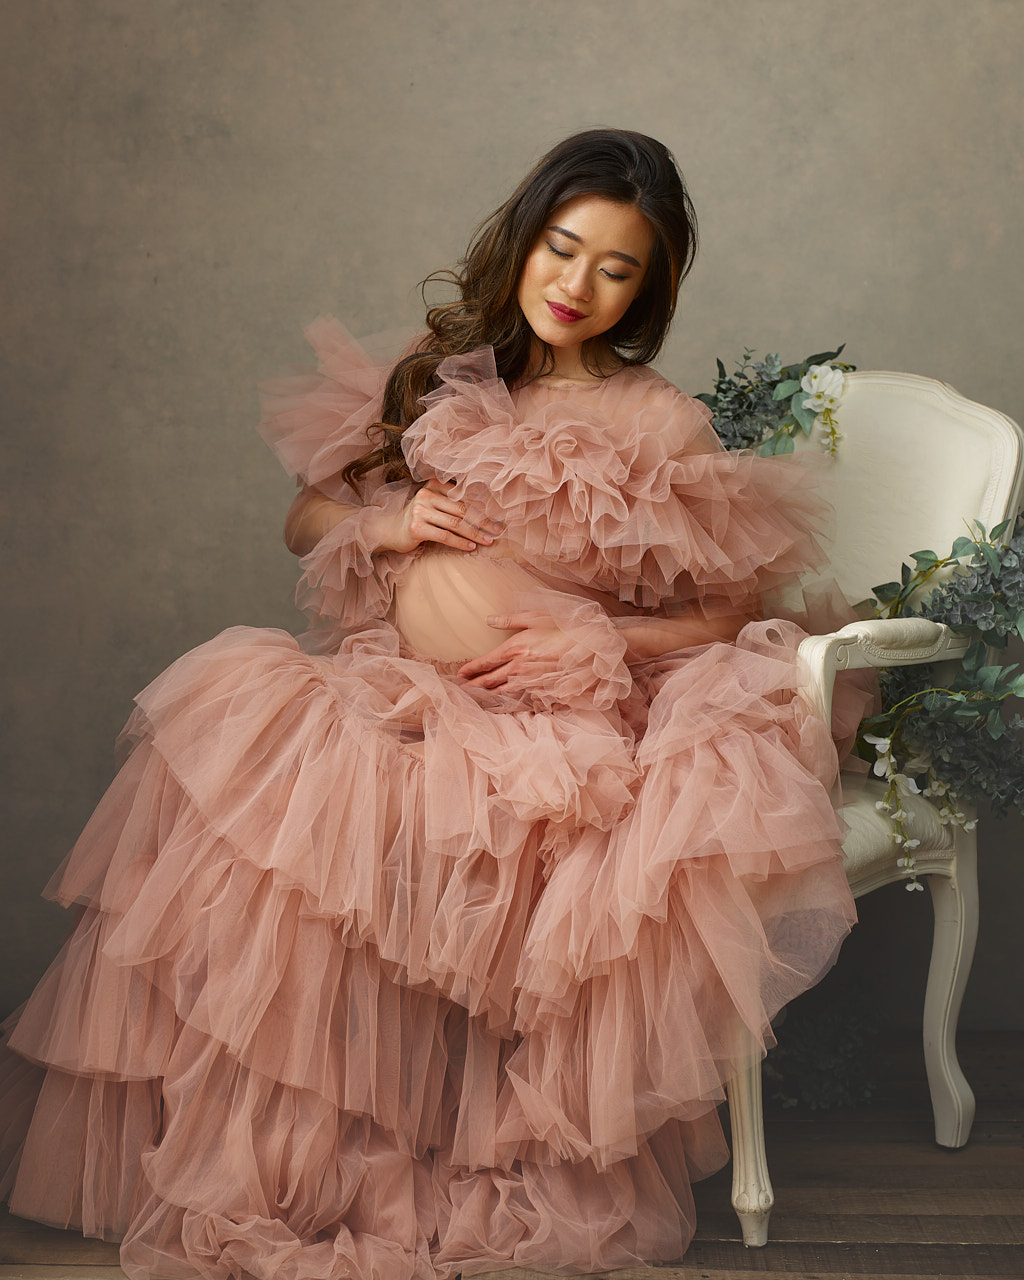 Pregnant asian woman in pink maternity gown. Maternity portrait photographer near Washington DC  Portraits by Jared Wolfe in Alexandria VA